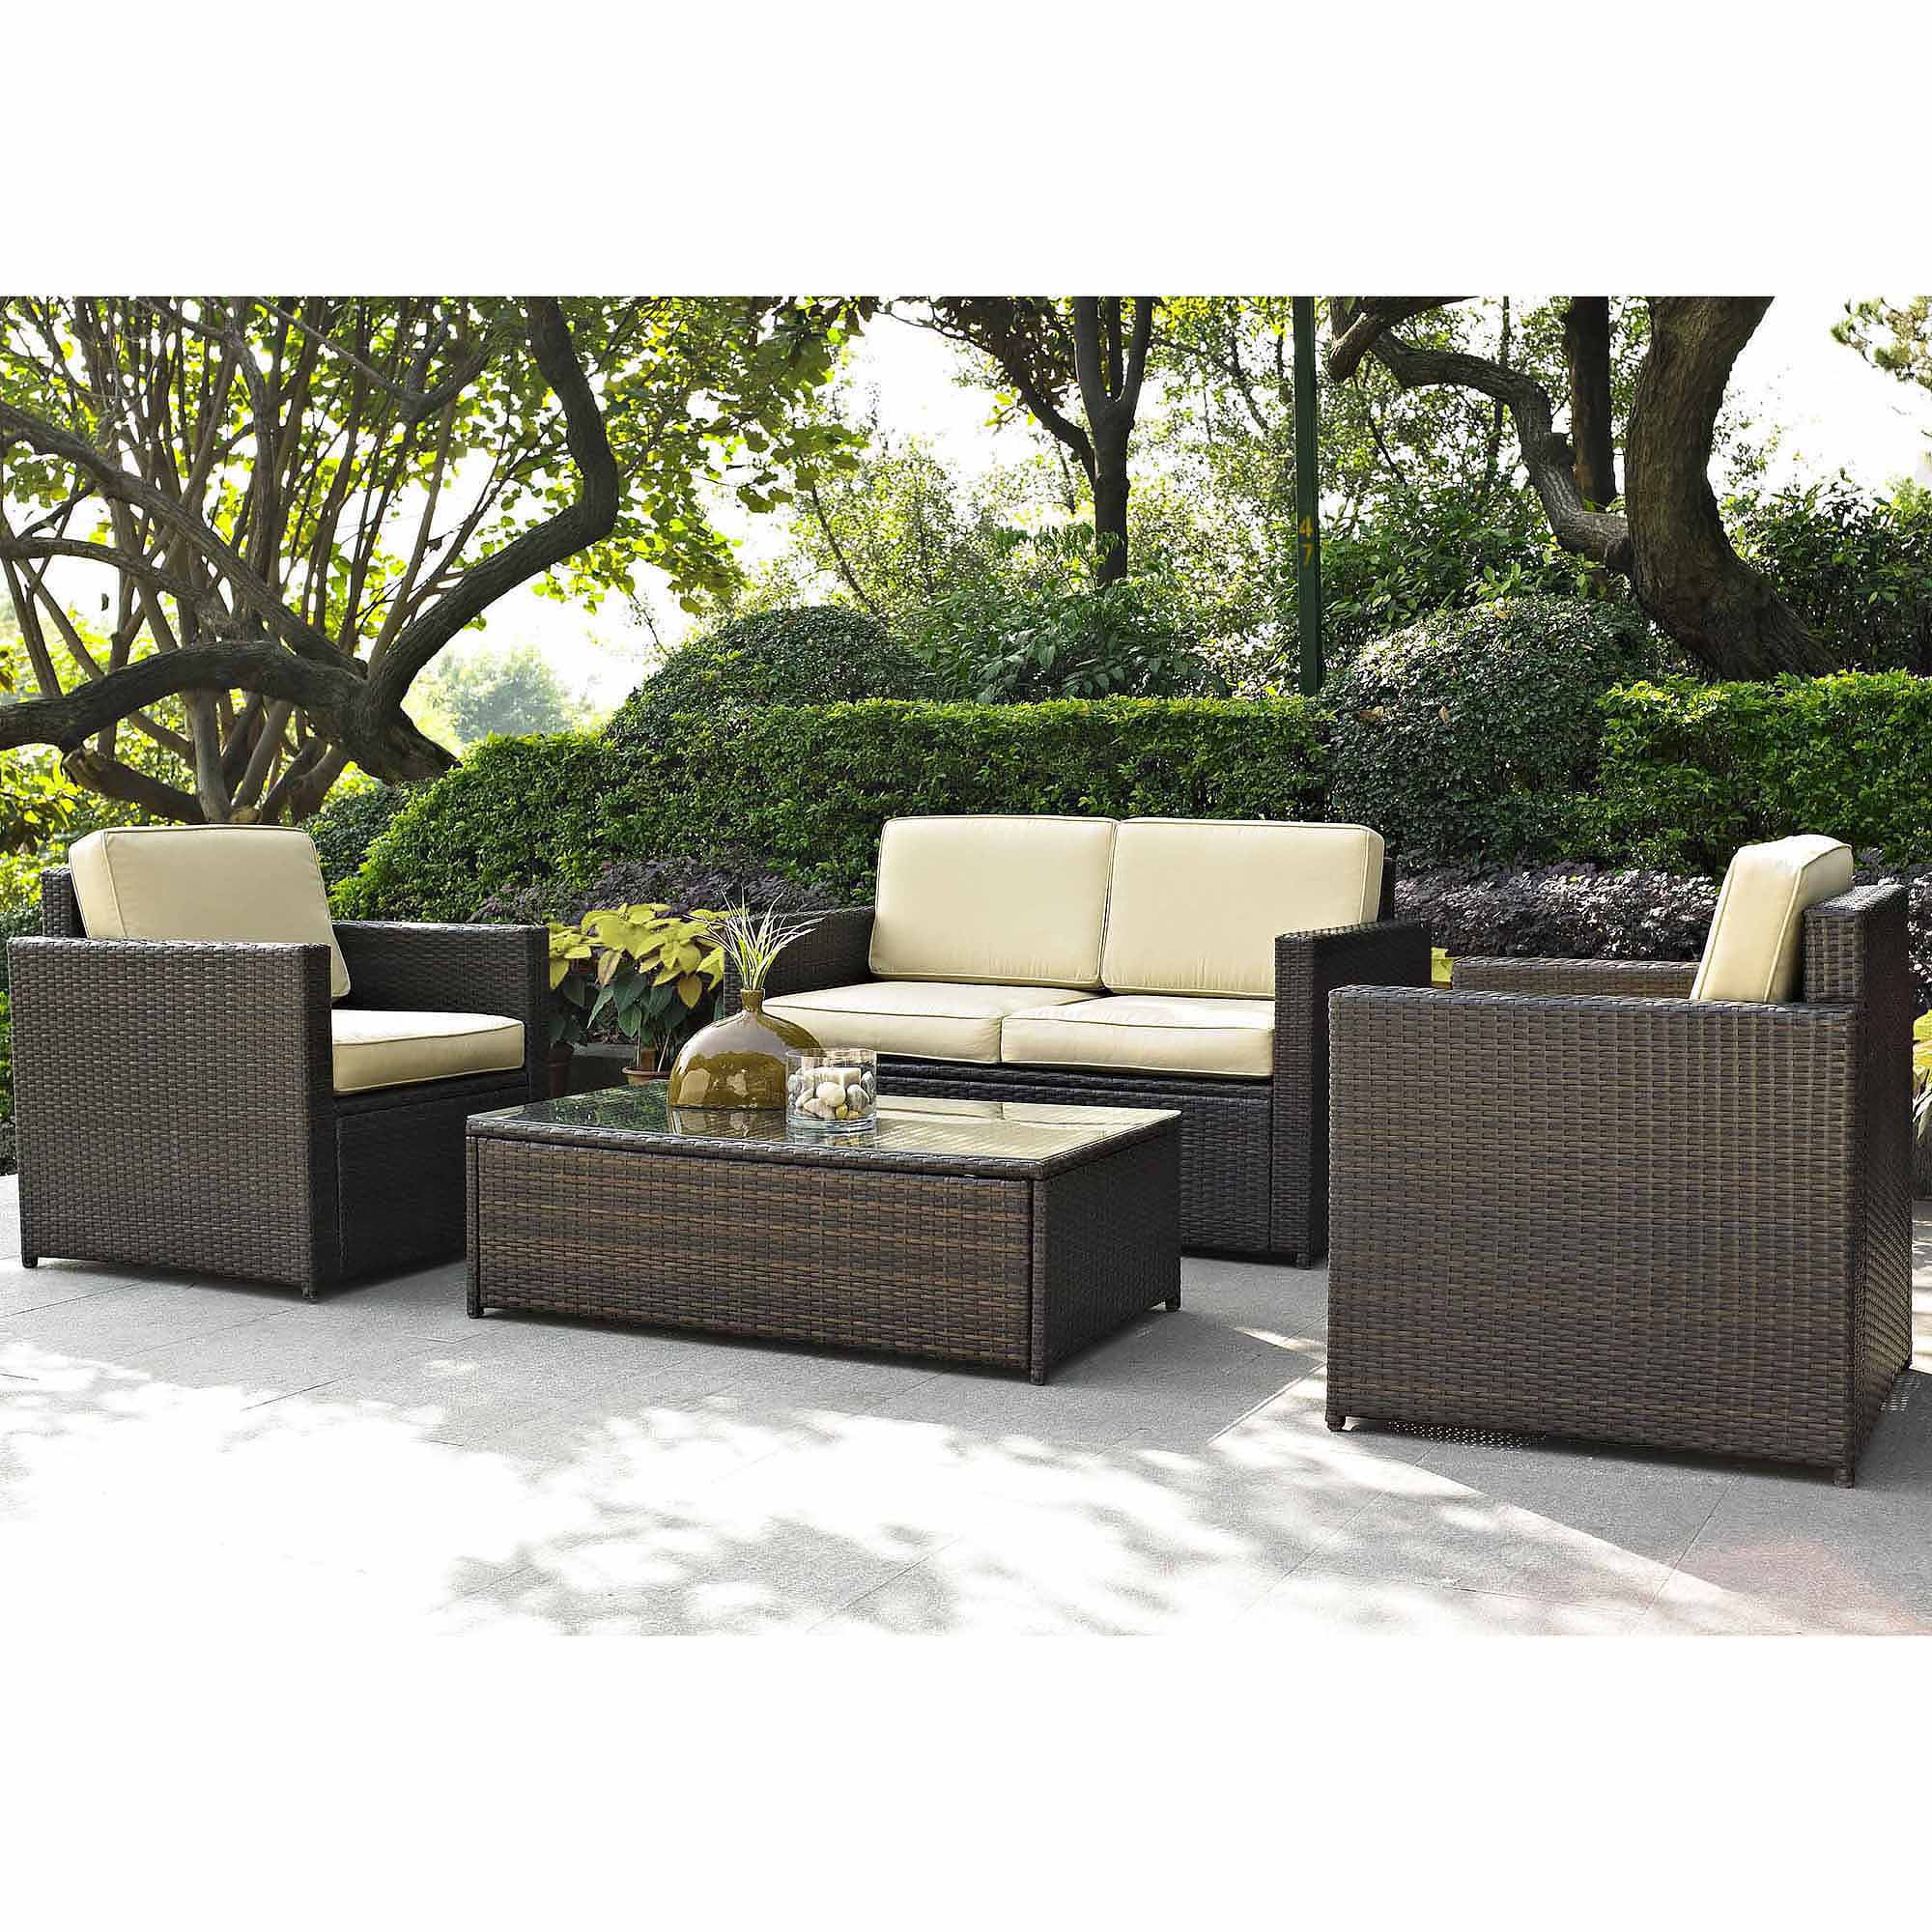 Wicker Patio Chair Best Choice Products 4 Piece Wicker Patio Conversation Furniture Set W 4 Seats Tempered Glass Tabletop 3 Sofas Table Weather Resistant Cushions